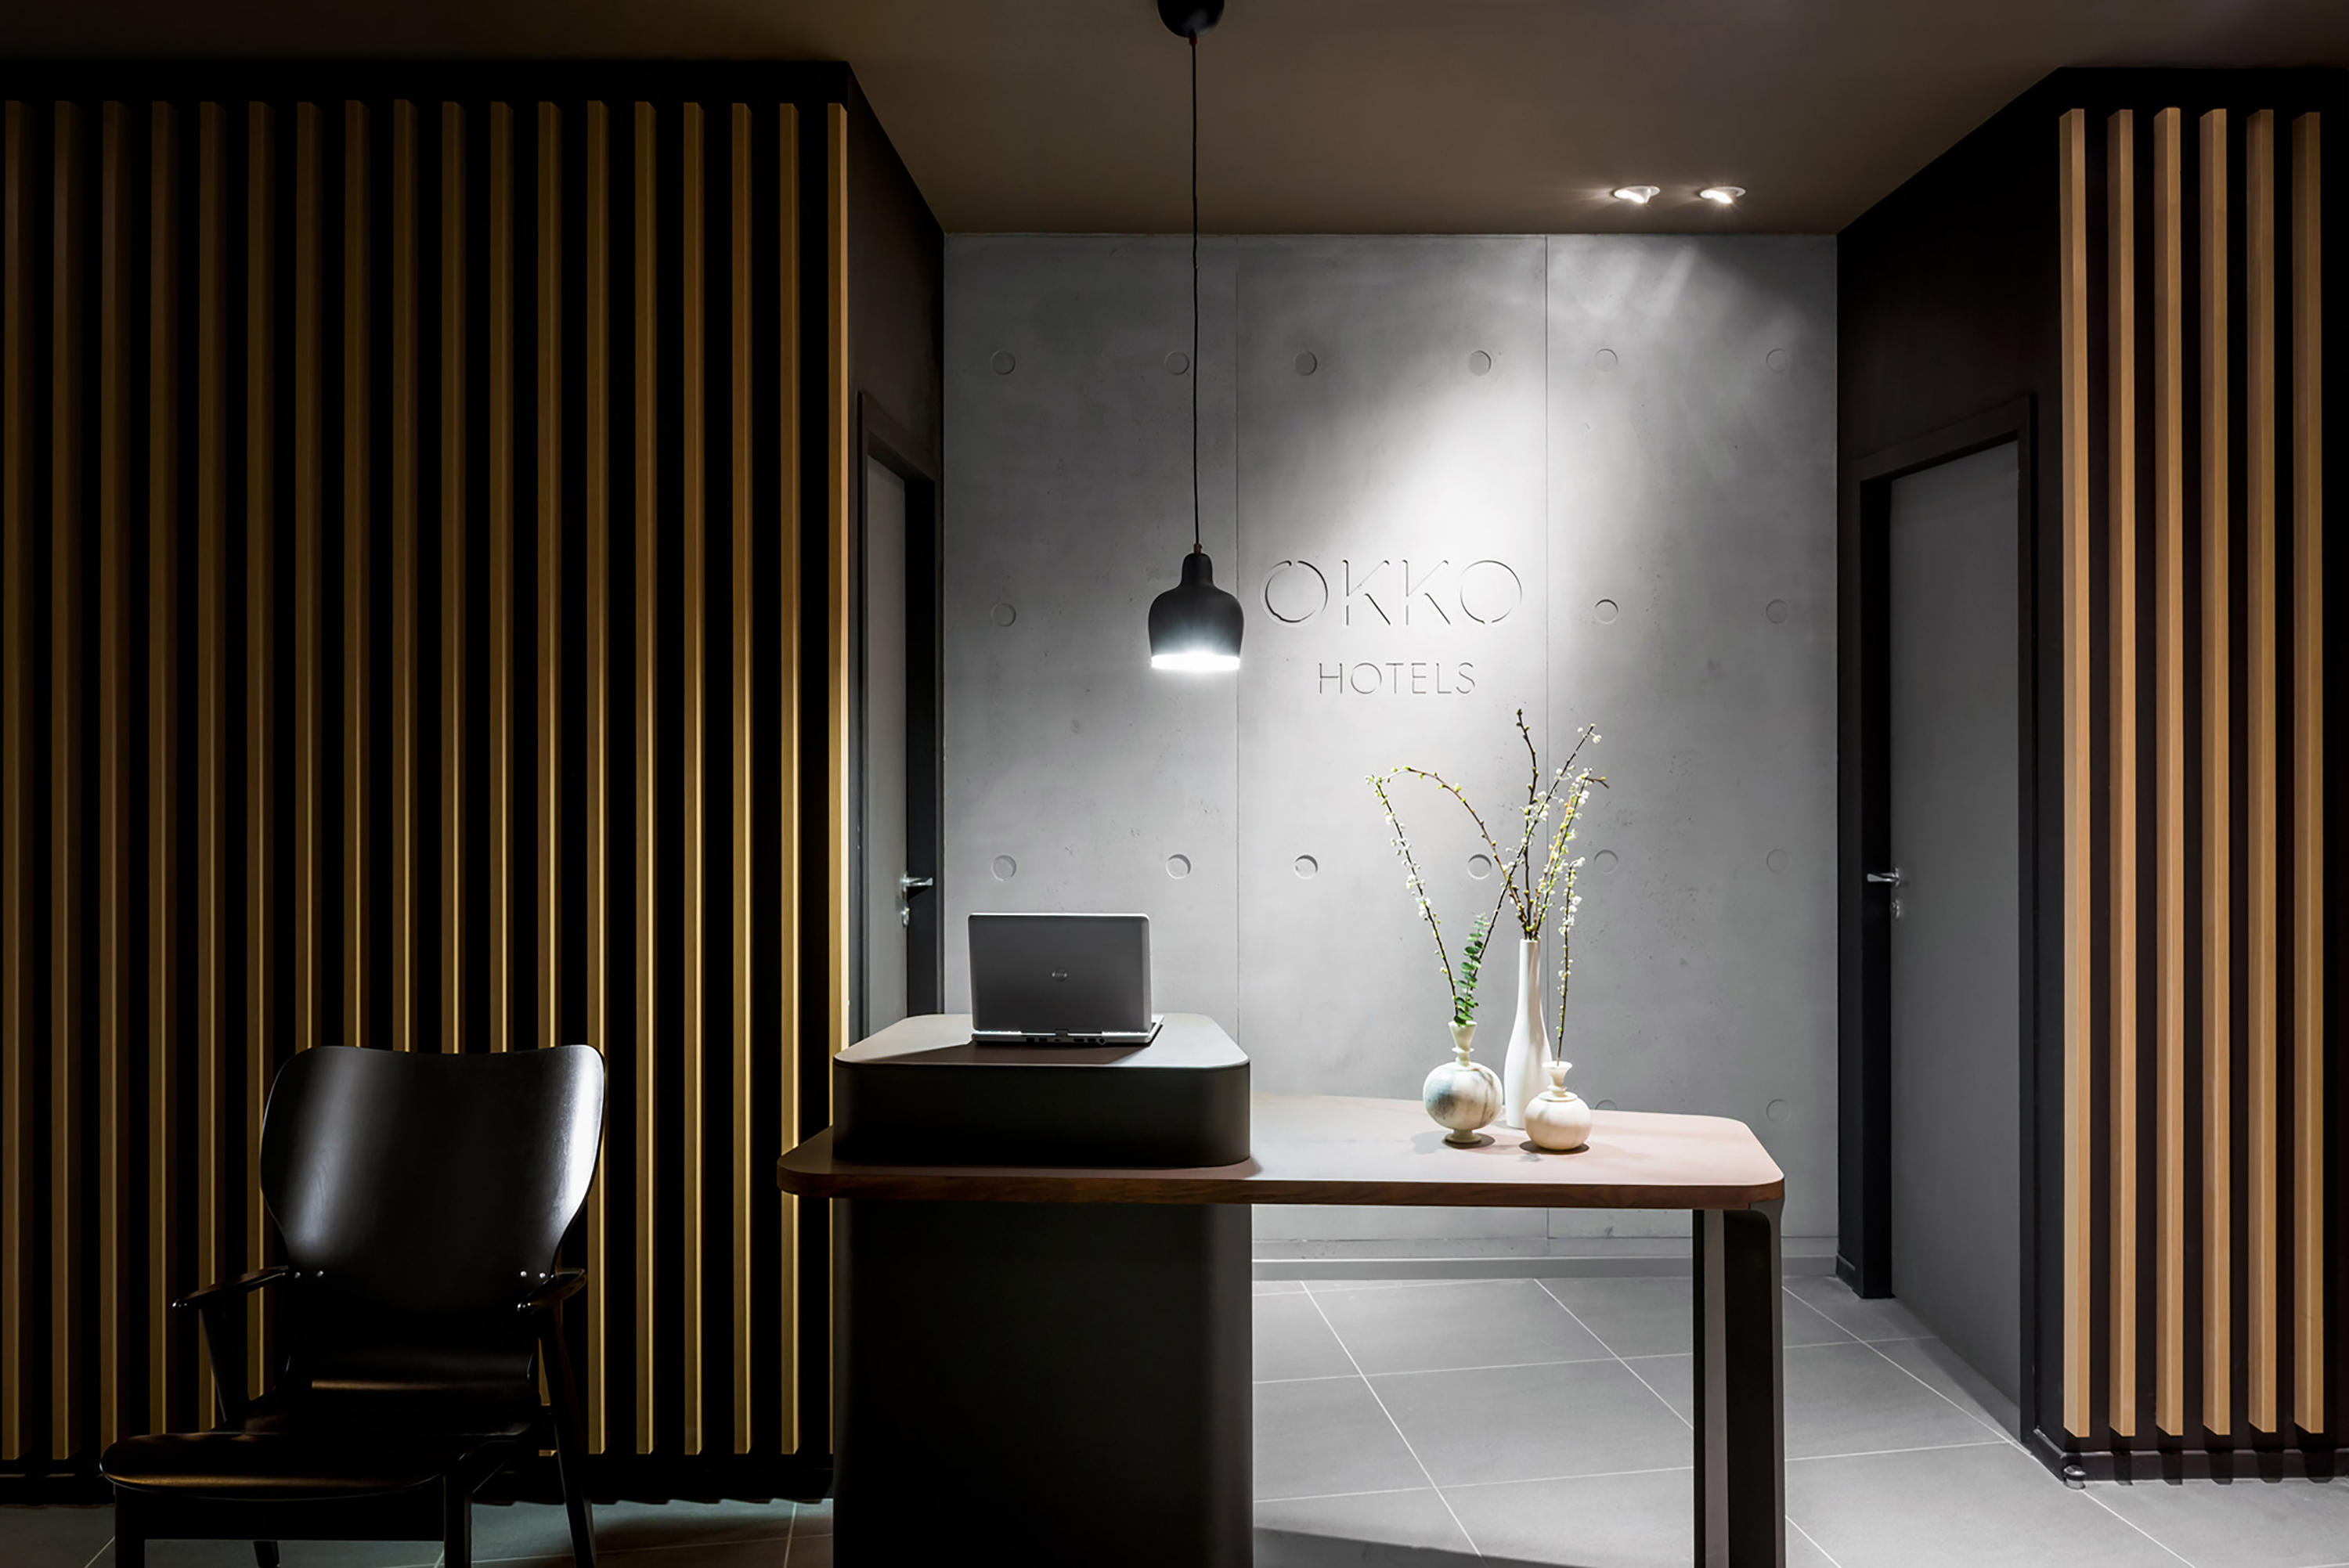 panbeton scaffolded 2mm concrete panels from concrete lcda architonic. Black Bedroom Furniture Sets. Home Design Ideas